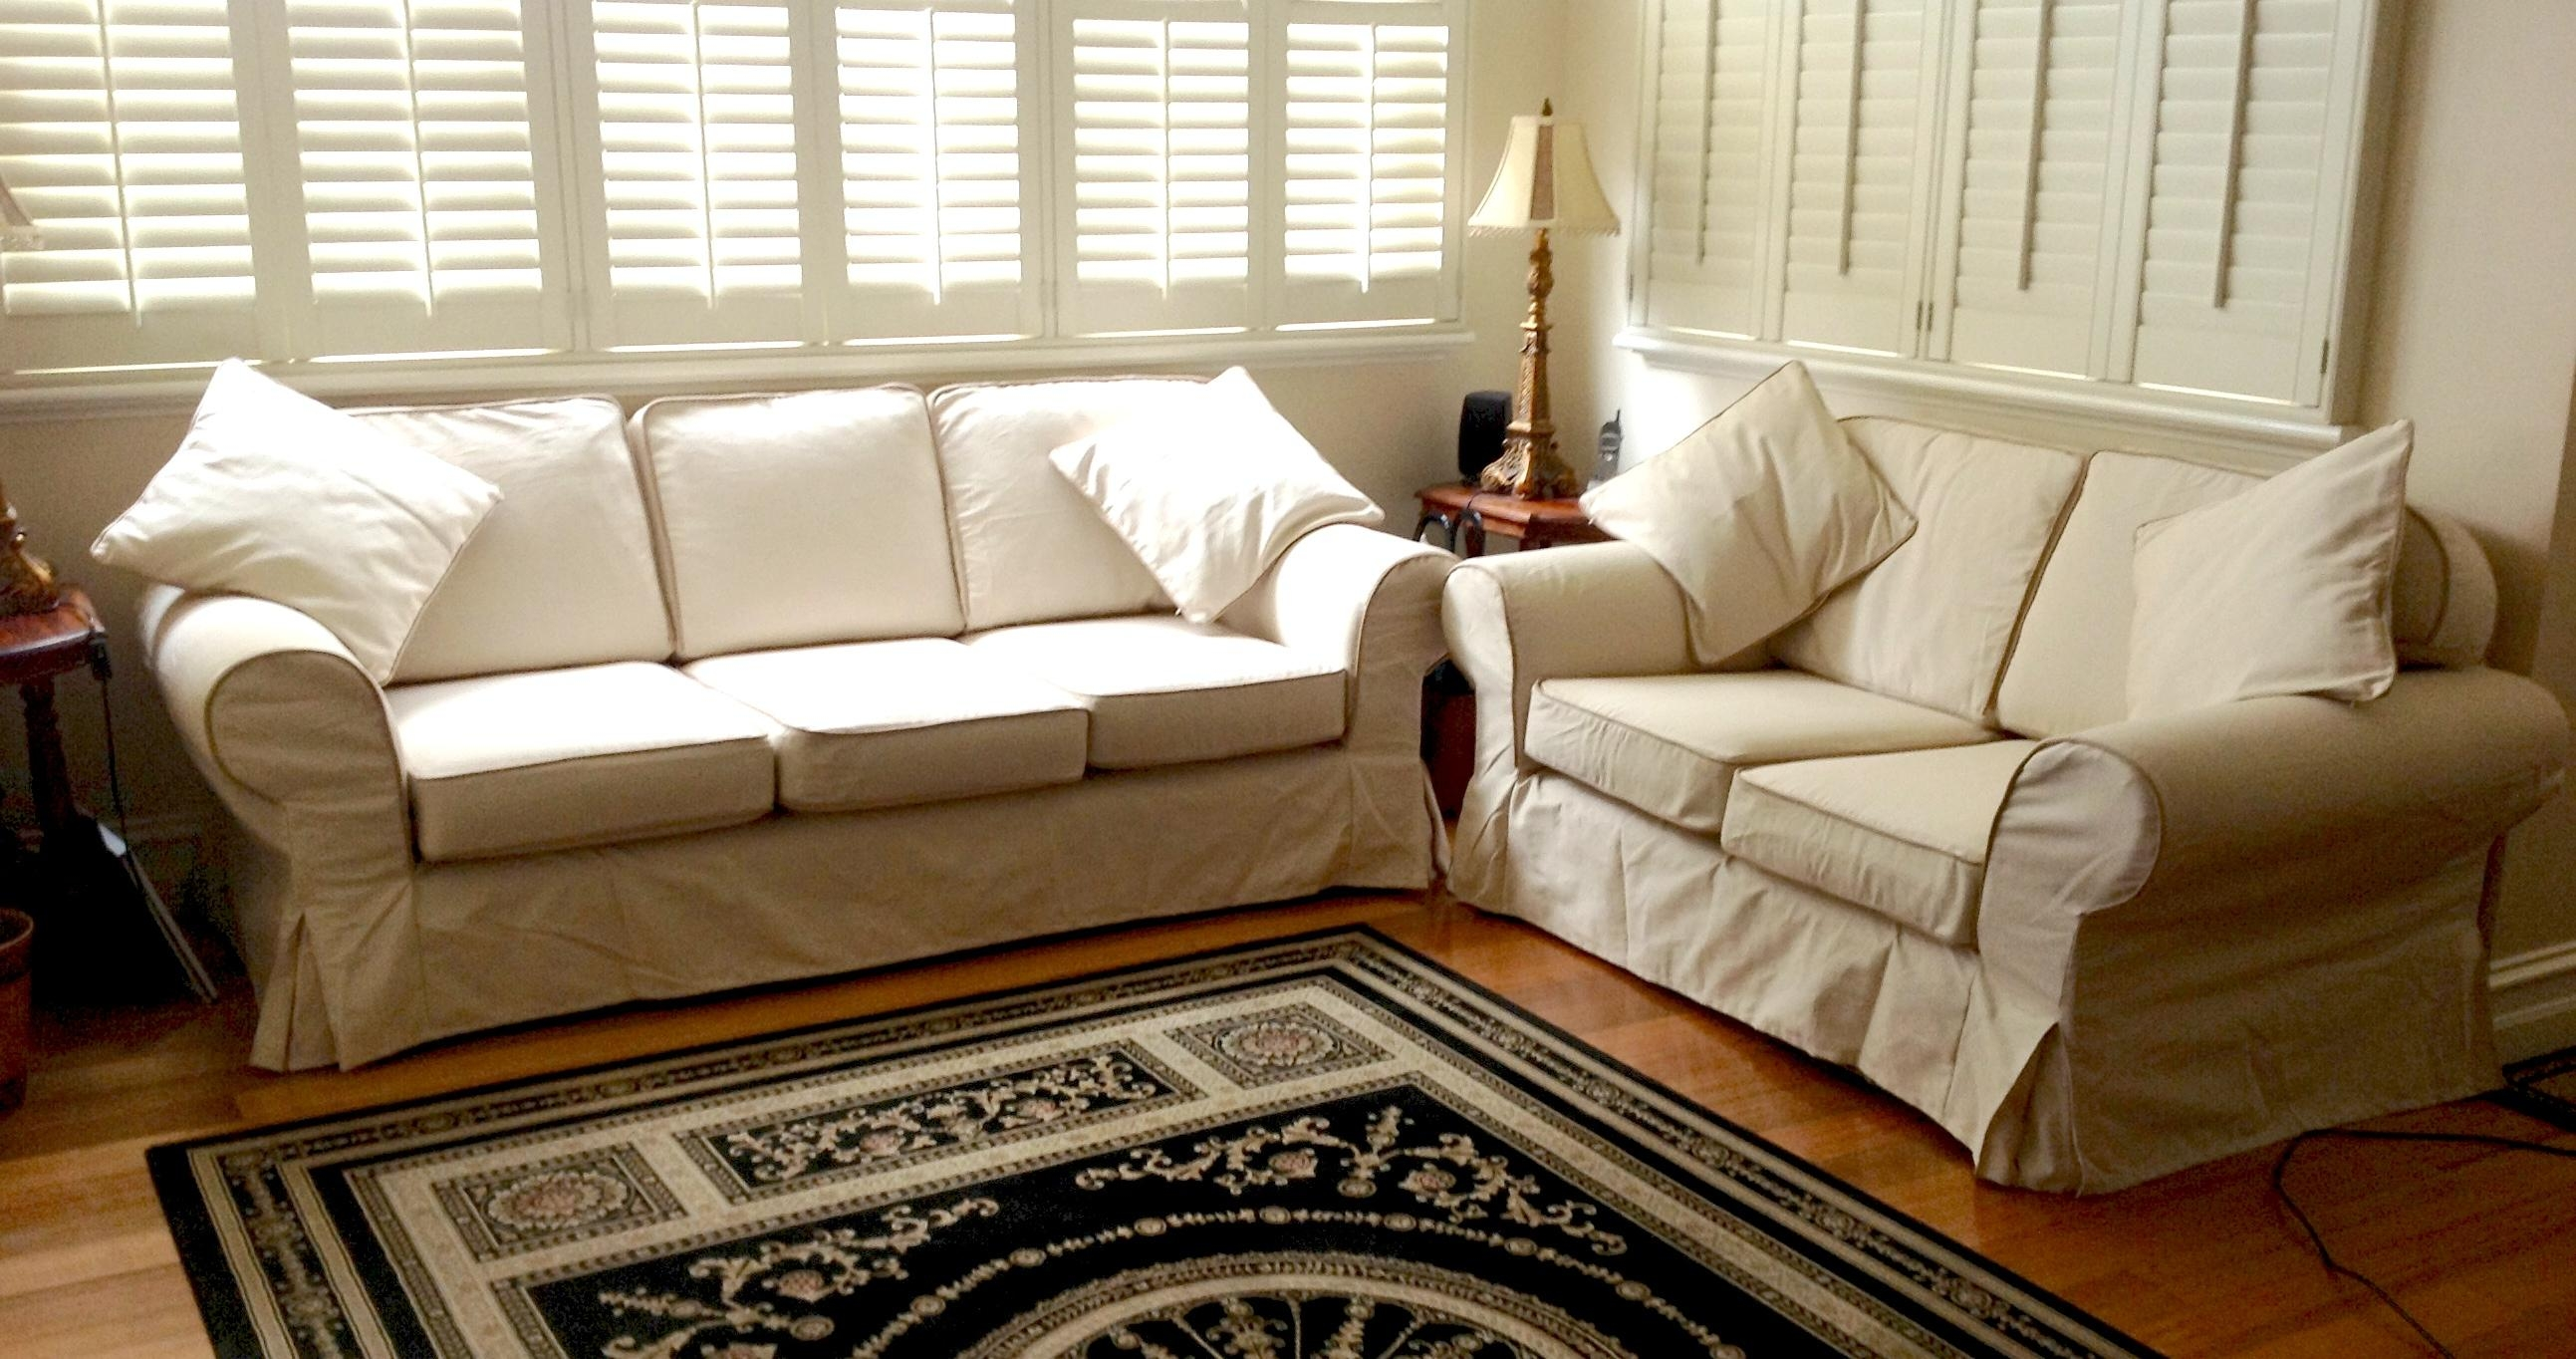 Custom Slipcovers And Couch Cover For Any Sofa Online Regarding Sofa Settee Covers (View 12 of 22)